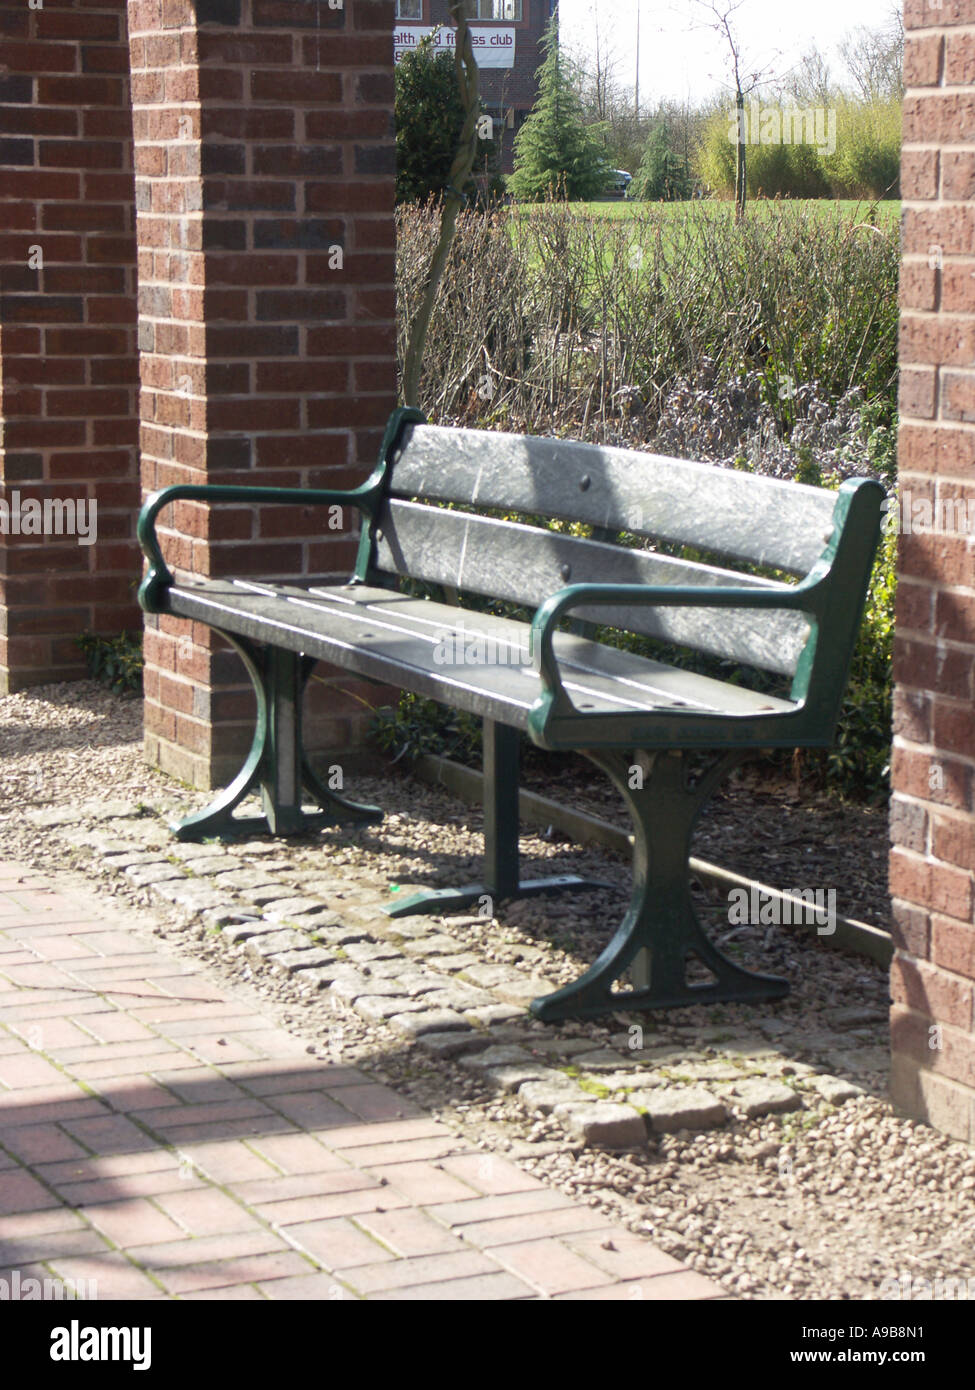 Picture of: Park Bench With Seating Made From Recycled Plastic Stock Photo Alamy